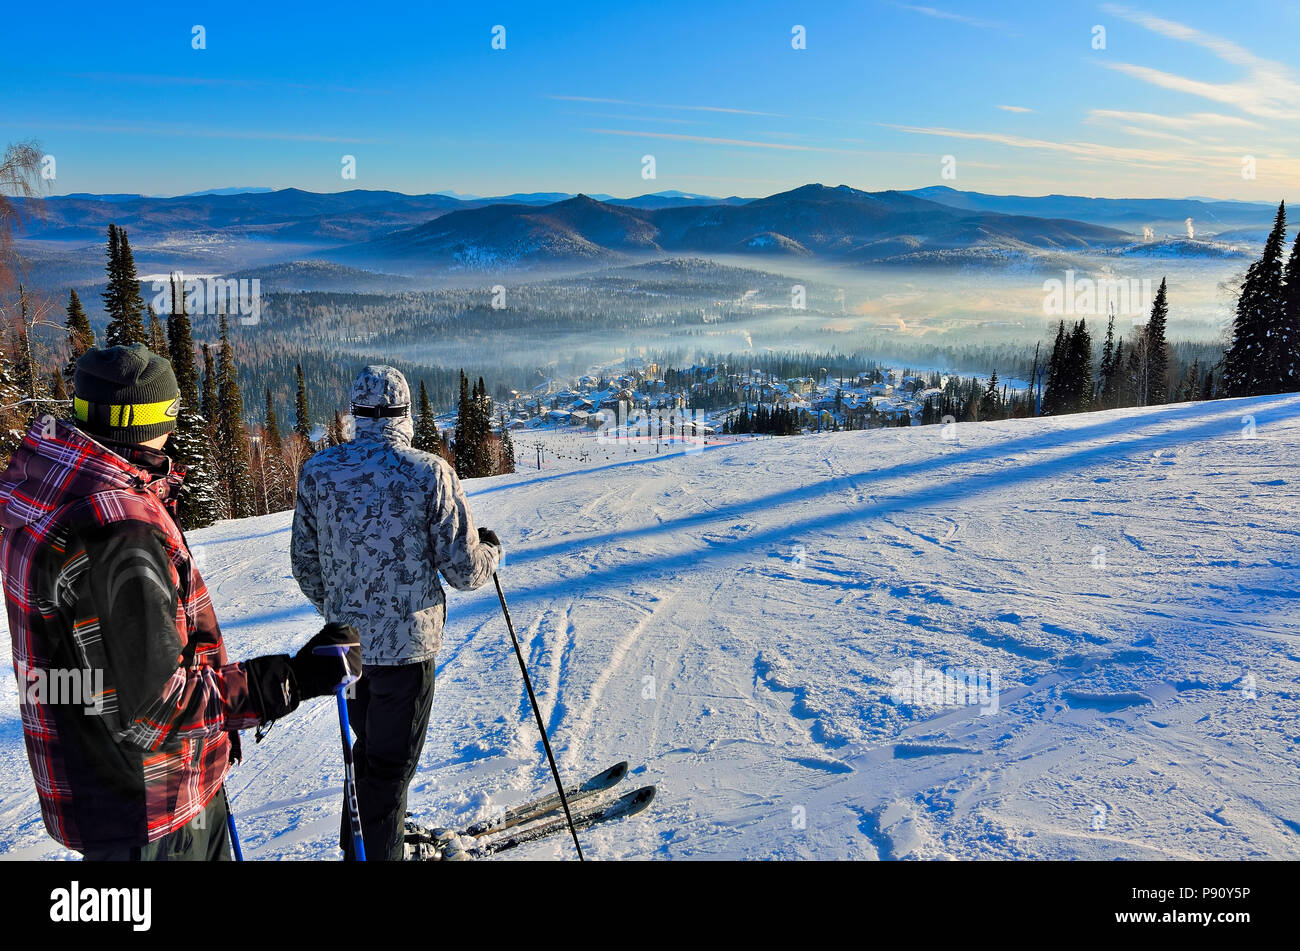 RUSSIA, SIBERIA, SHEREGESH - JANUARY 11, 2016: Two young skiers stands on top of a winter mountain and admire of view frosty mountain scenery and the  - Stock Image